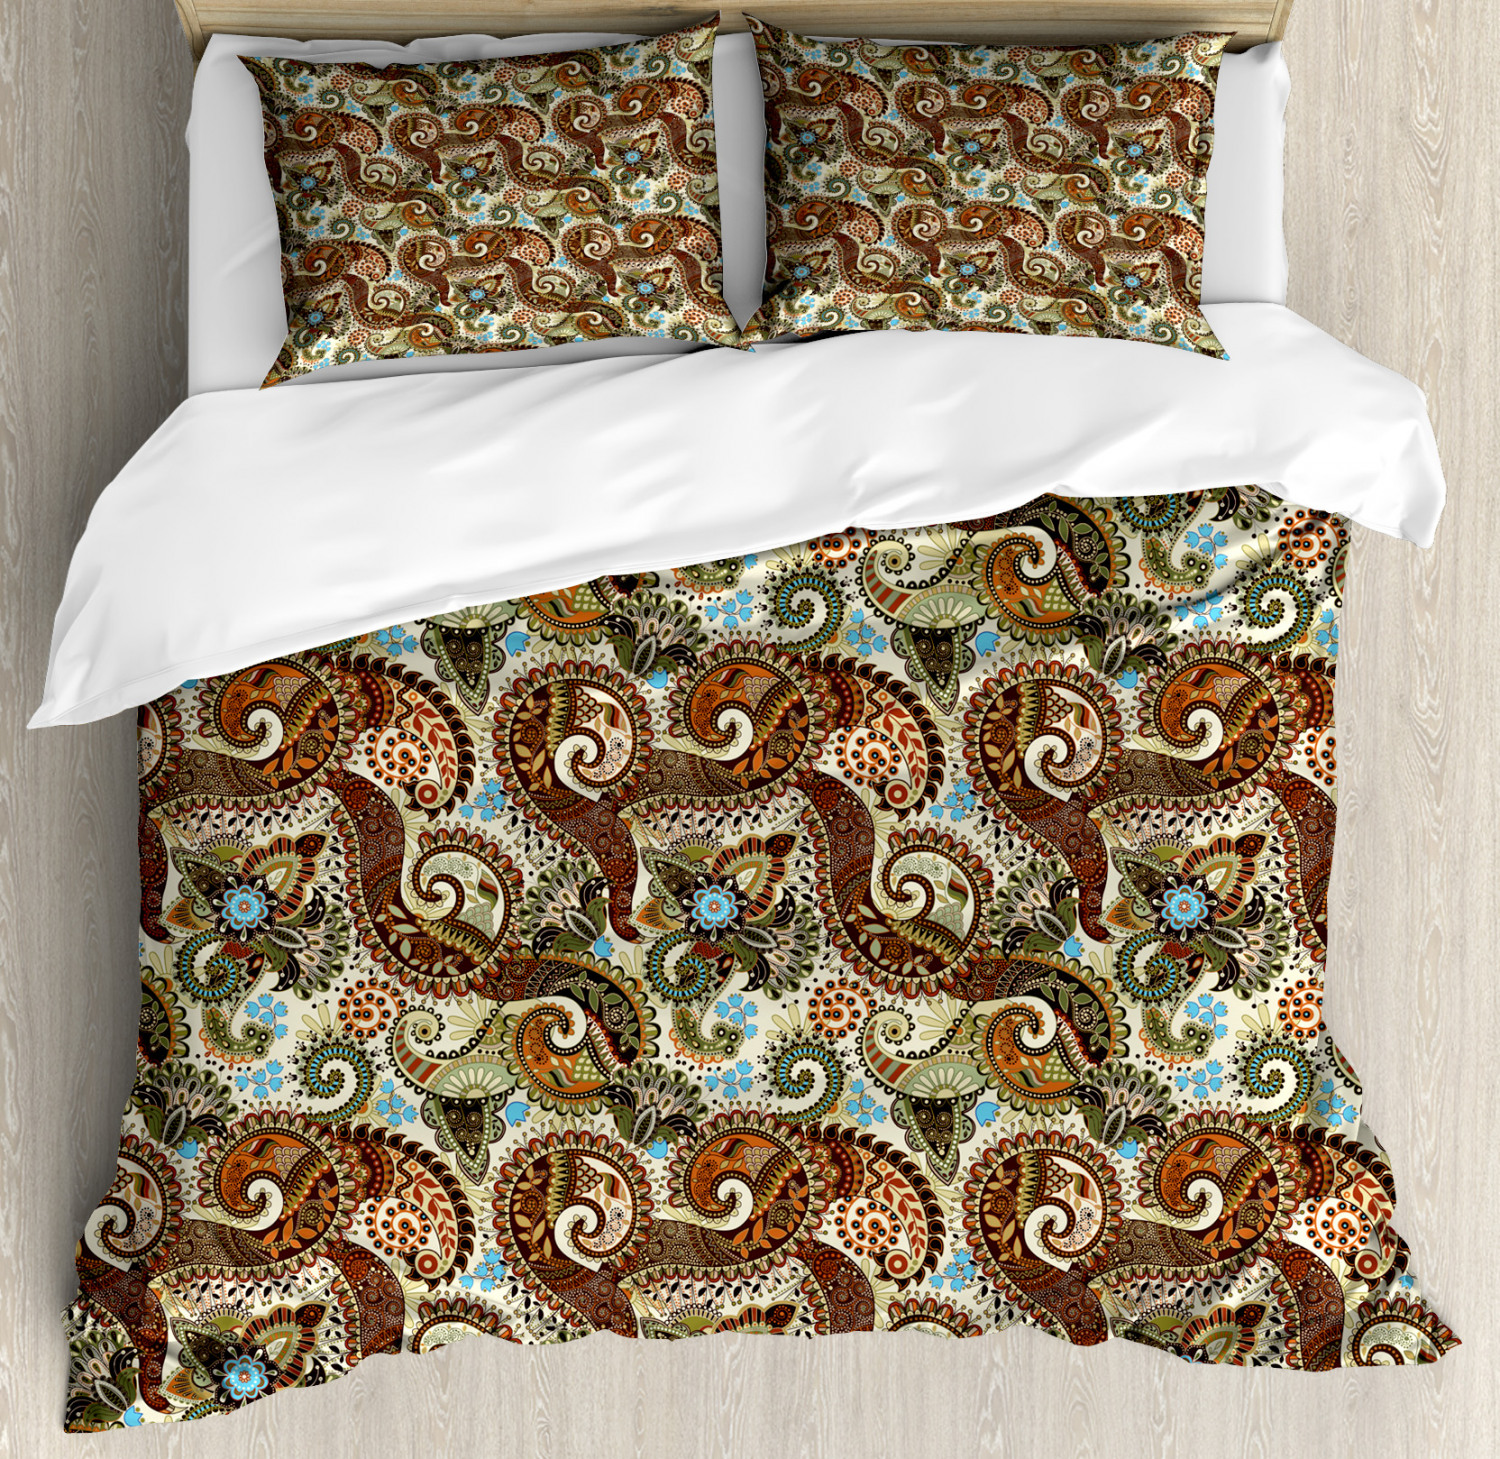 Paisley Duvet Cover Set with Pillow Shams Persian Teardrop Motif Print